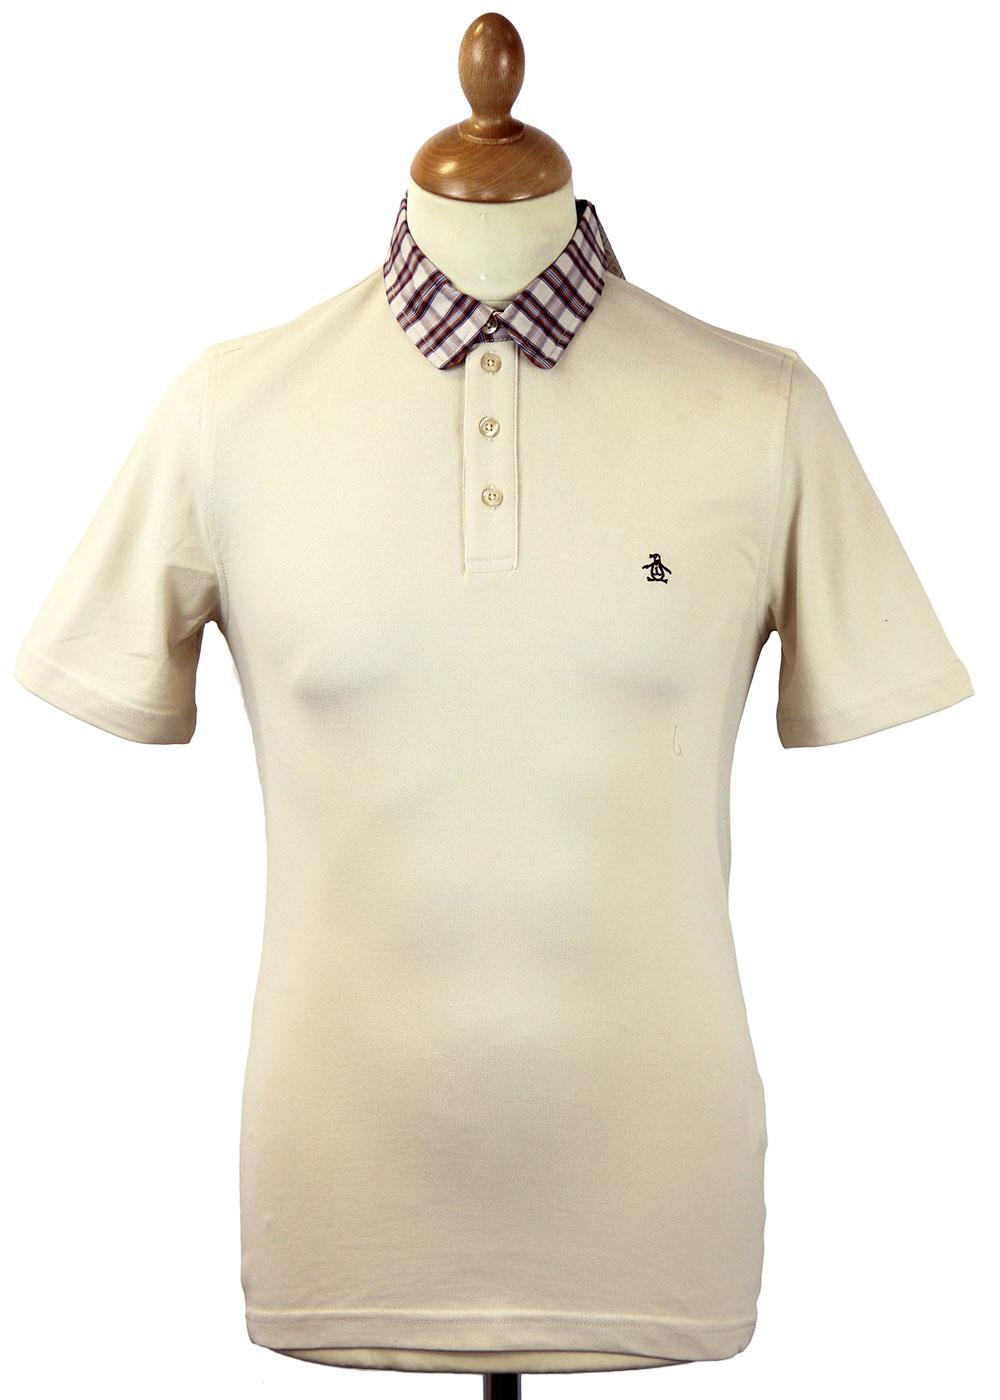 Bering Original Penguin Check Collar Retro Polo